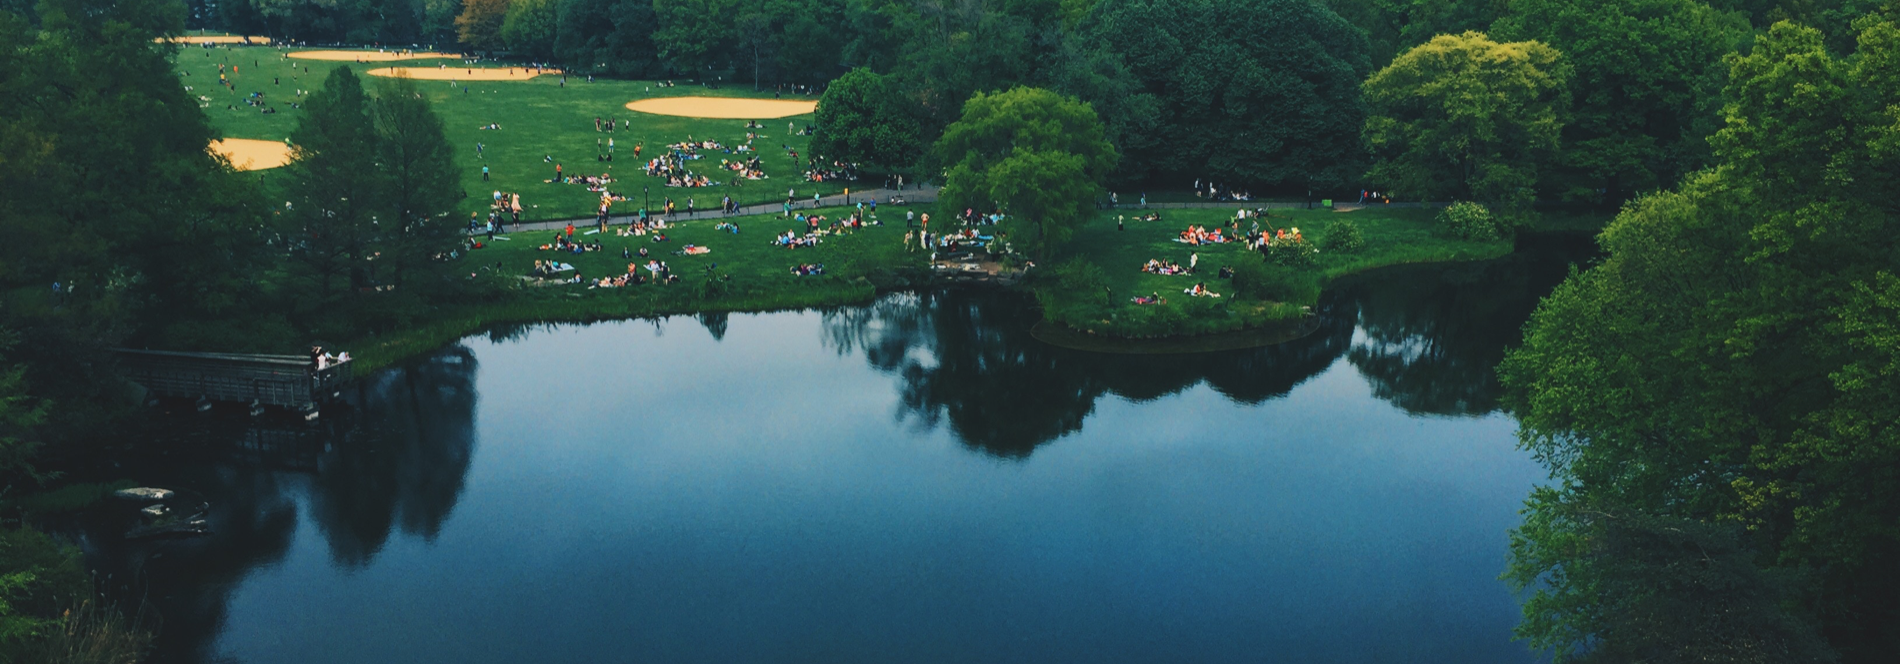 An aerial view of urban park featuring a skyline, lake and many people picnicking